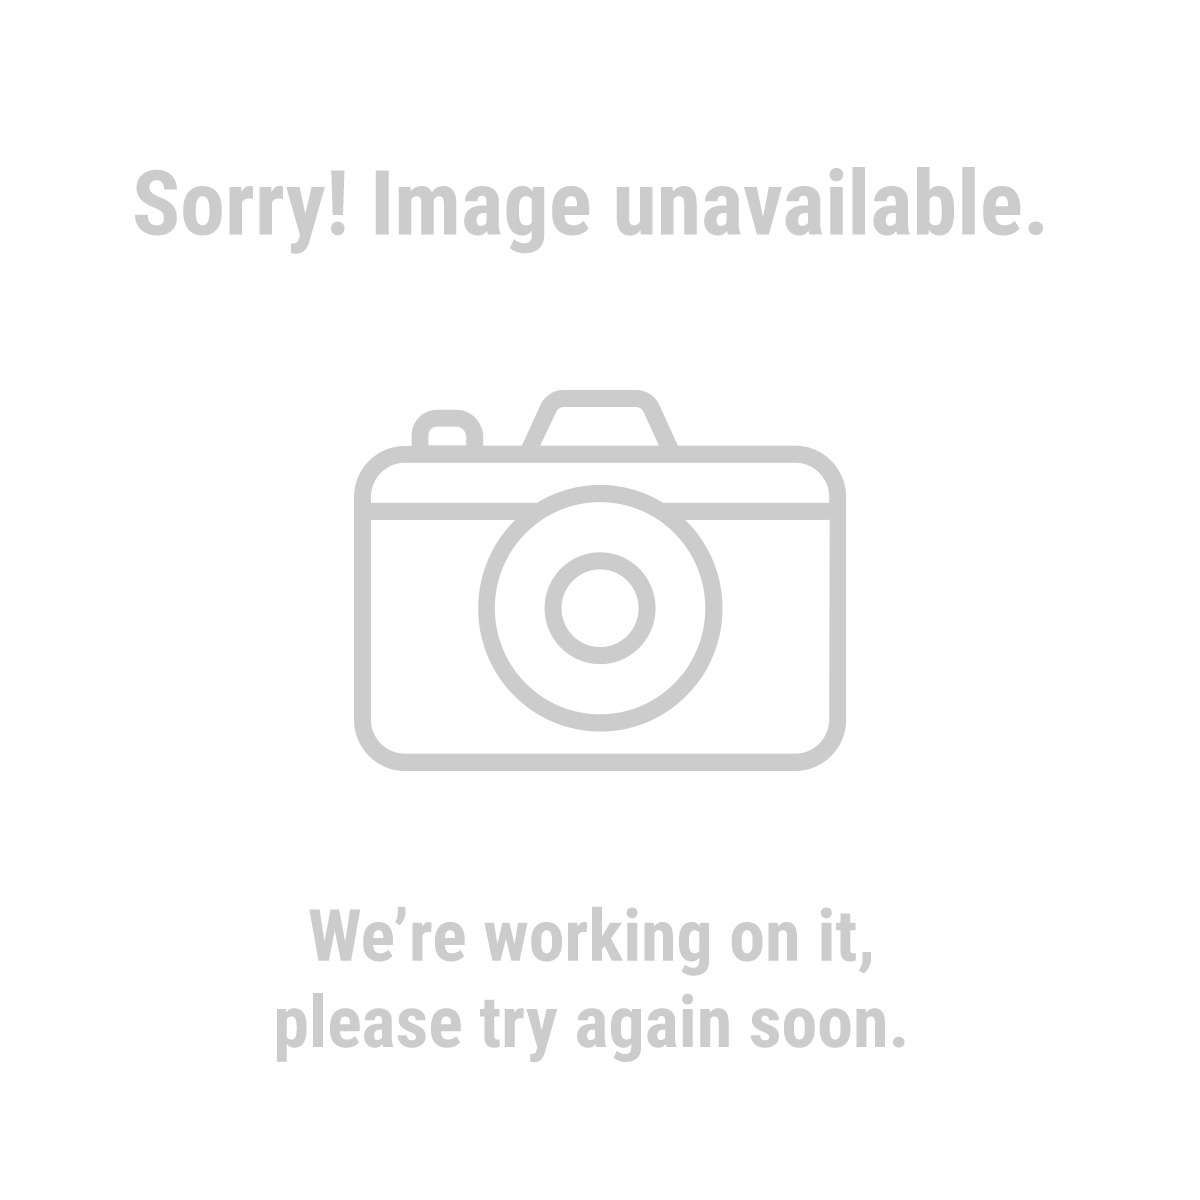 Haul-Master 90325 42 Piece Tie Down Kit